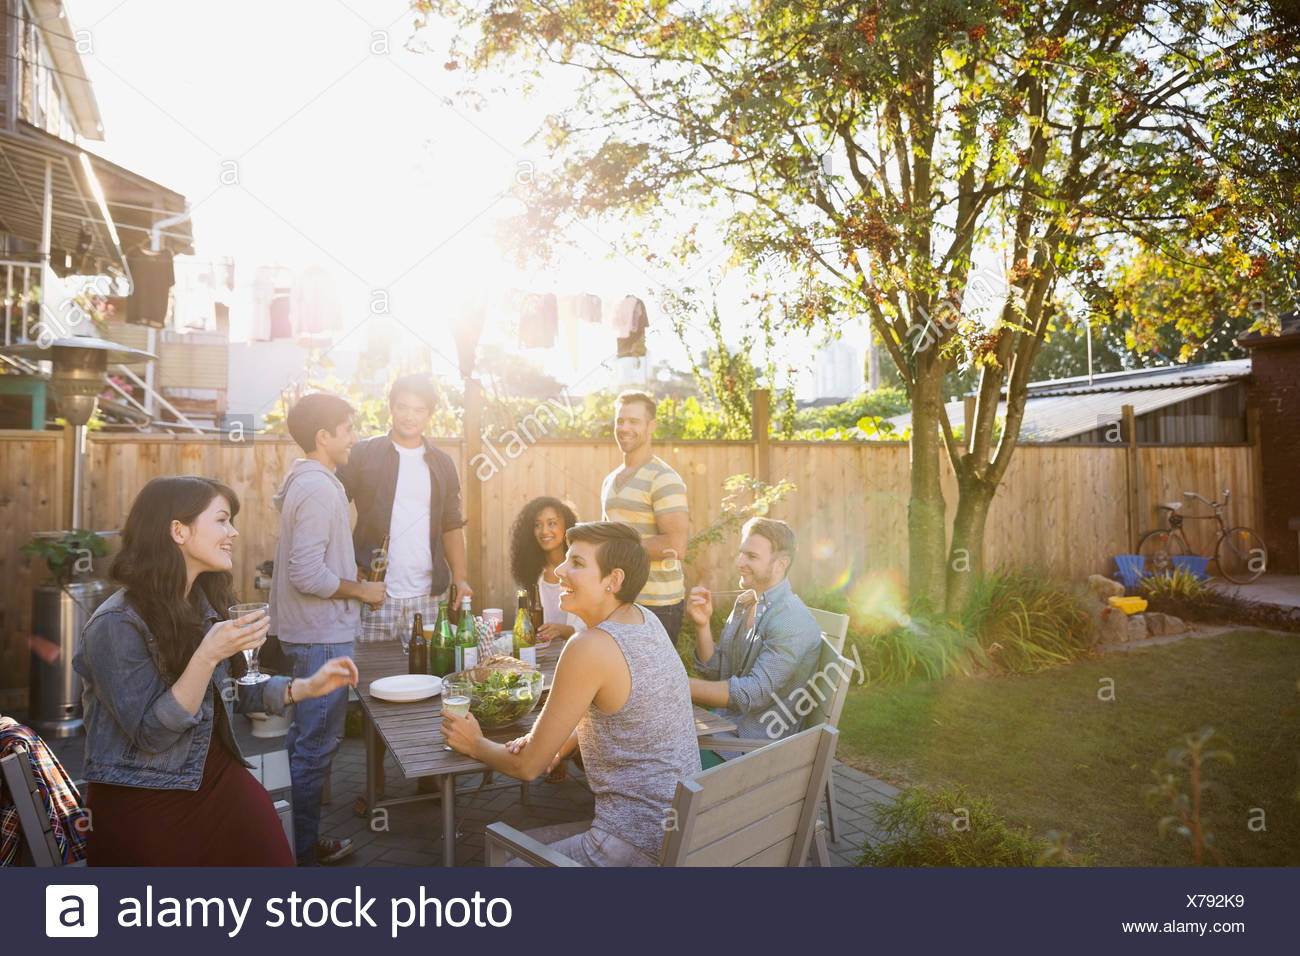 Friends eating and drinking at backyard barbecue - Stock Image